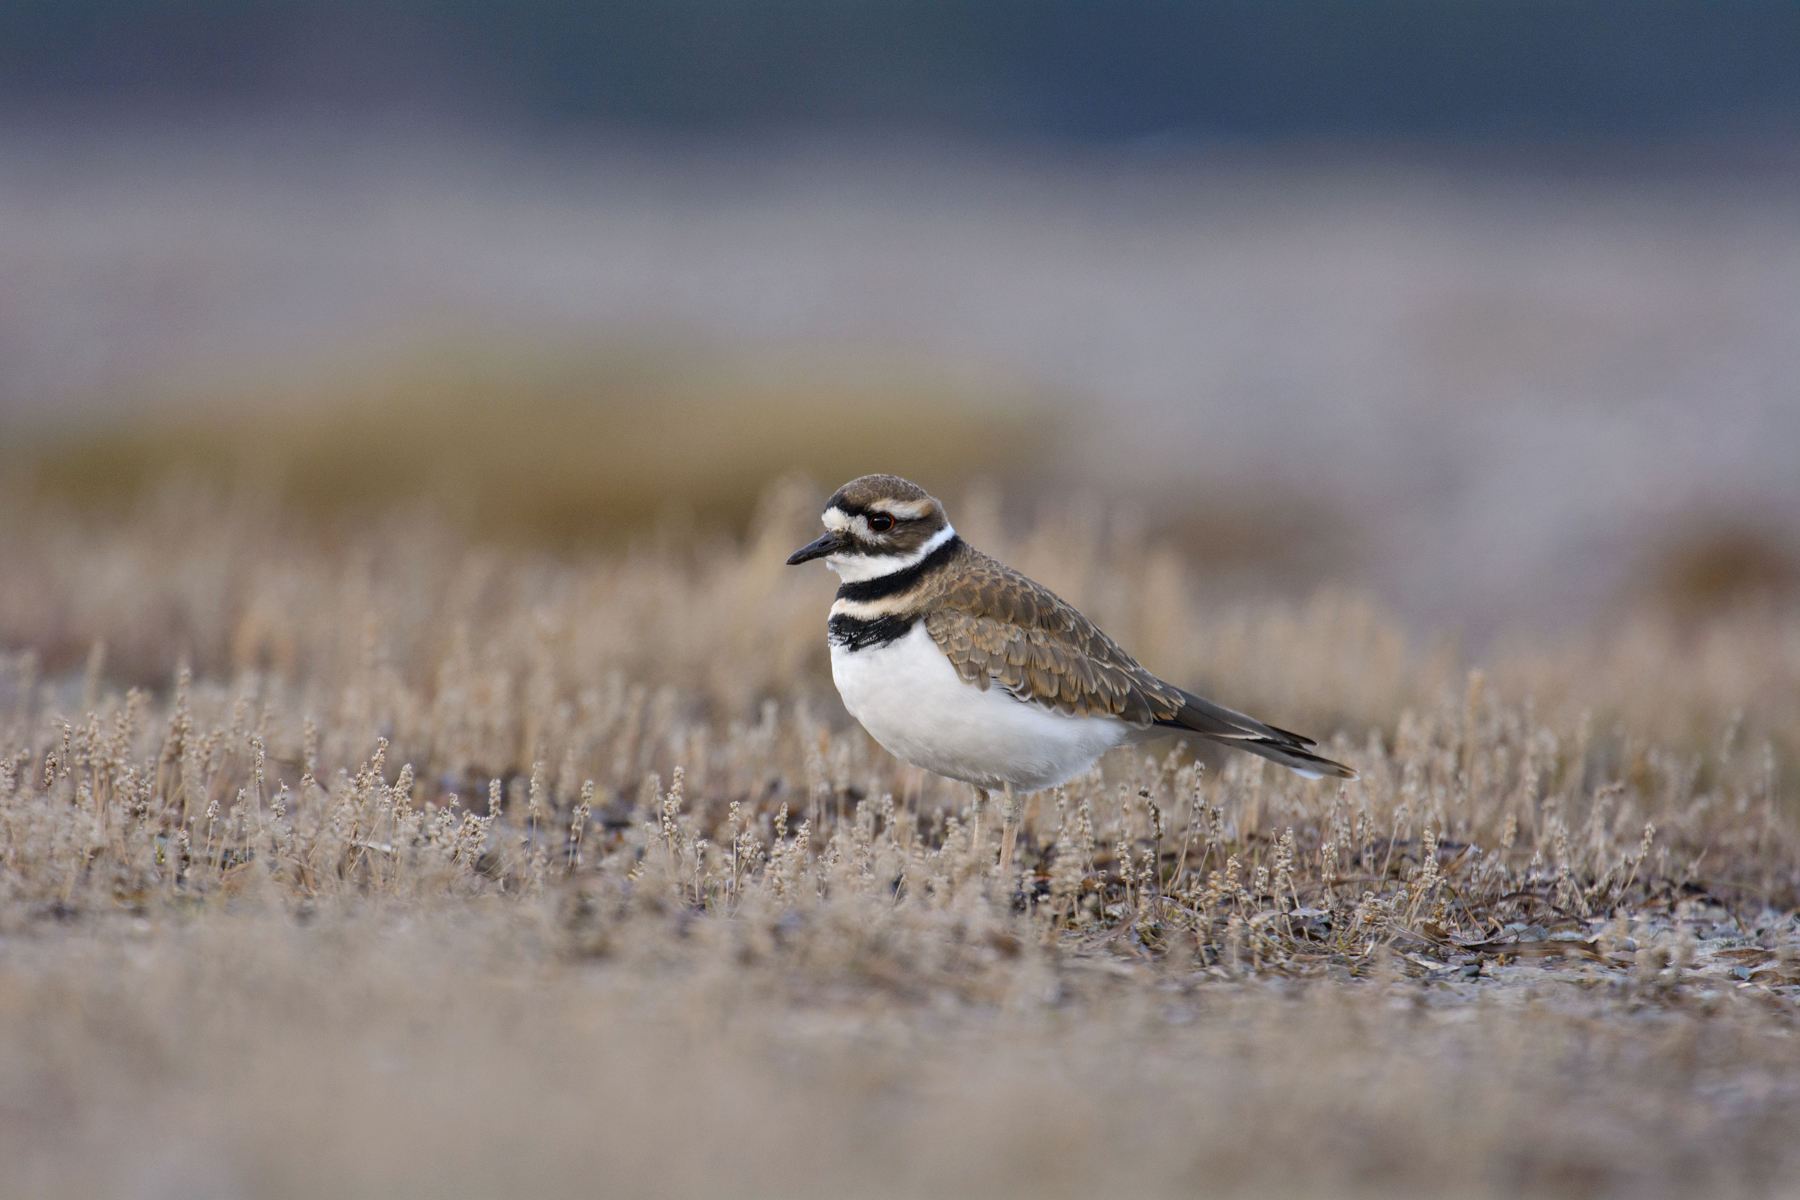 Killdeer1.jpg